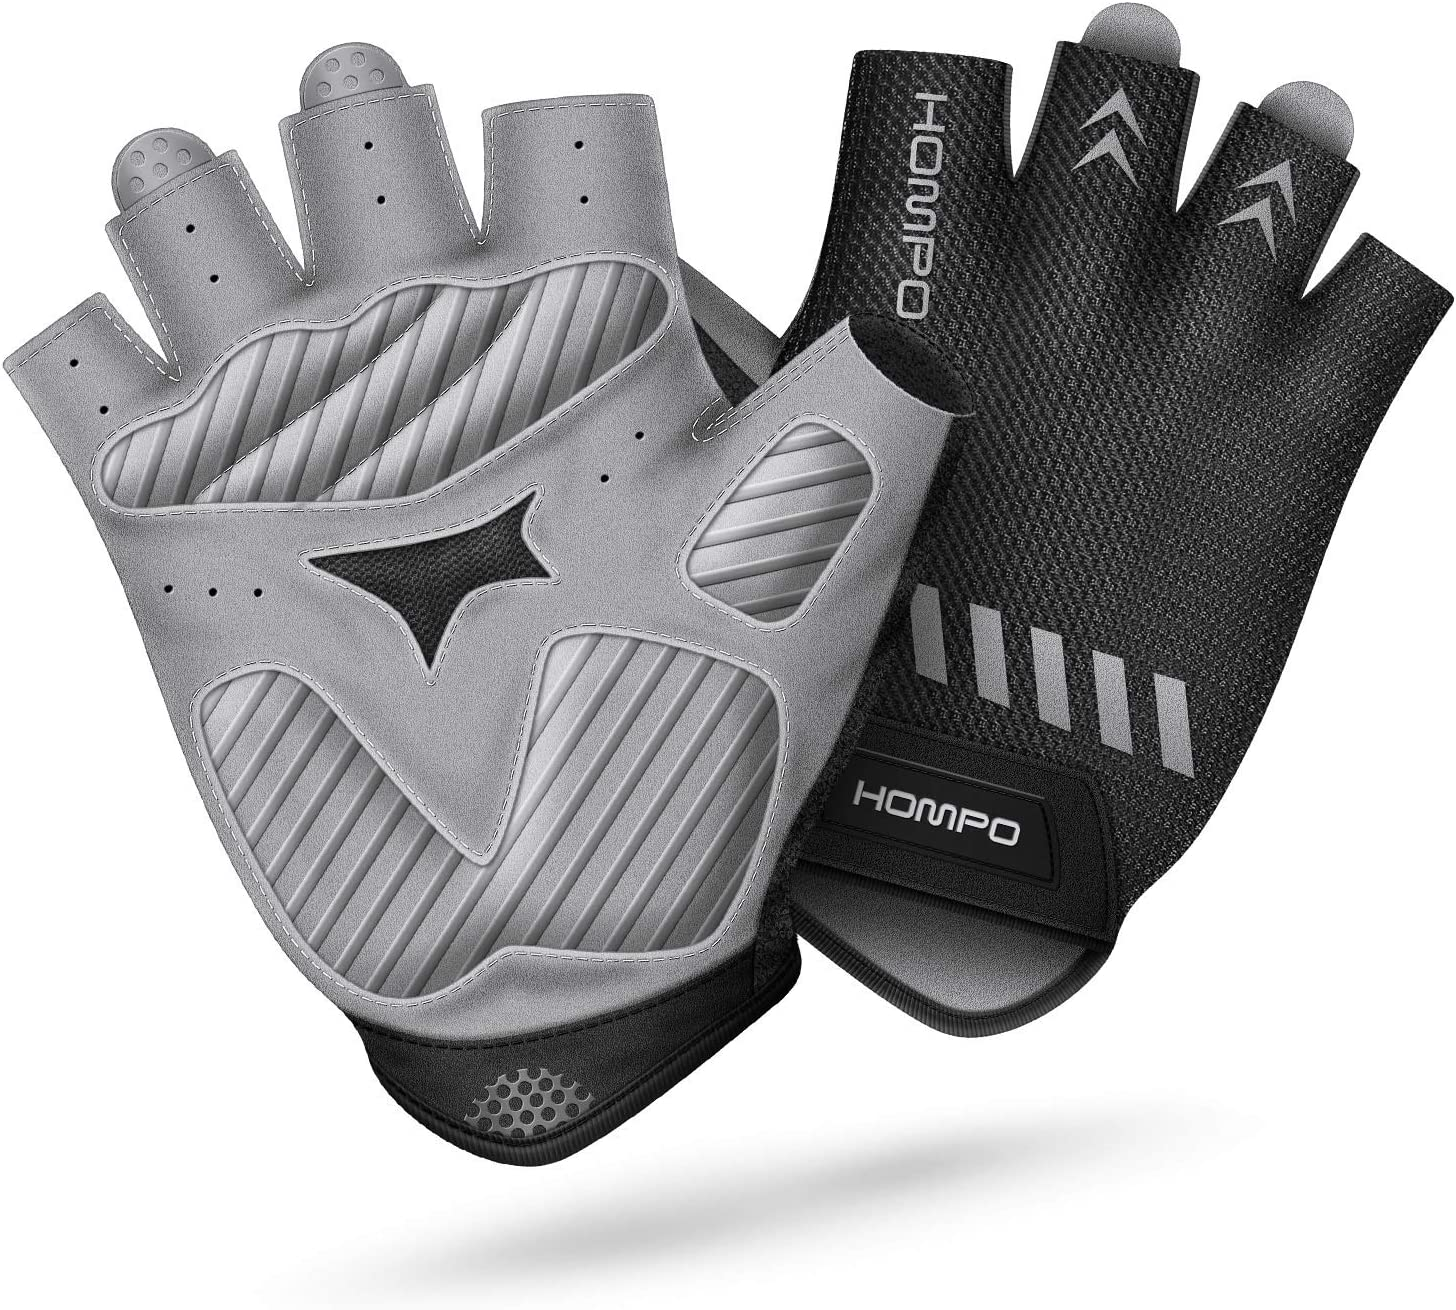 HOMPO Bike Gloves Cycling Gloves Half Finger for Men Women with Foam Padding Breathable Mesh Fashion Design for Motorcycle Bicycle Mountain Riding Driving Sports Outdoors Exercise